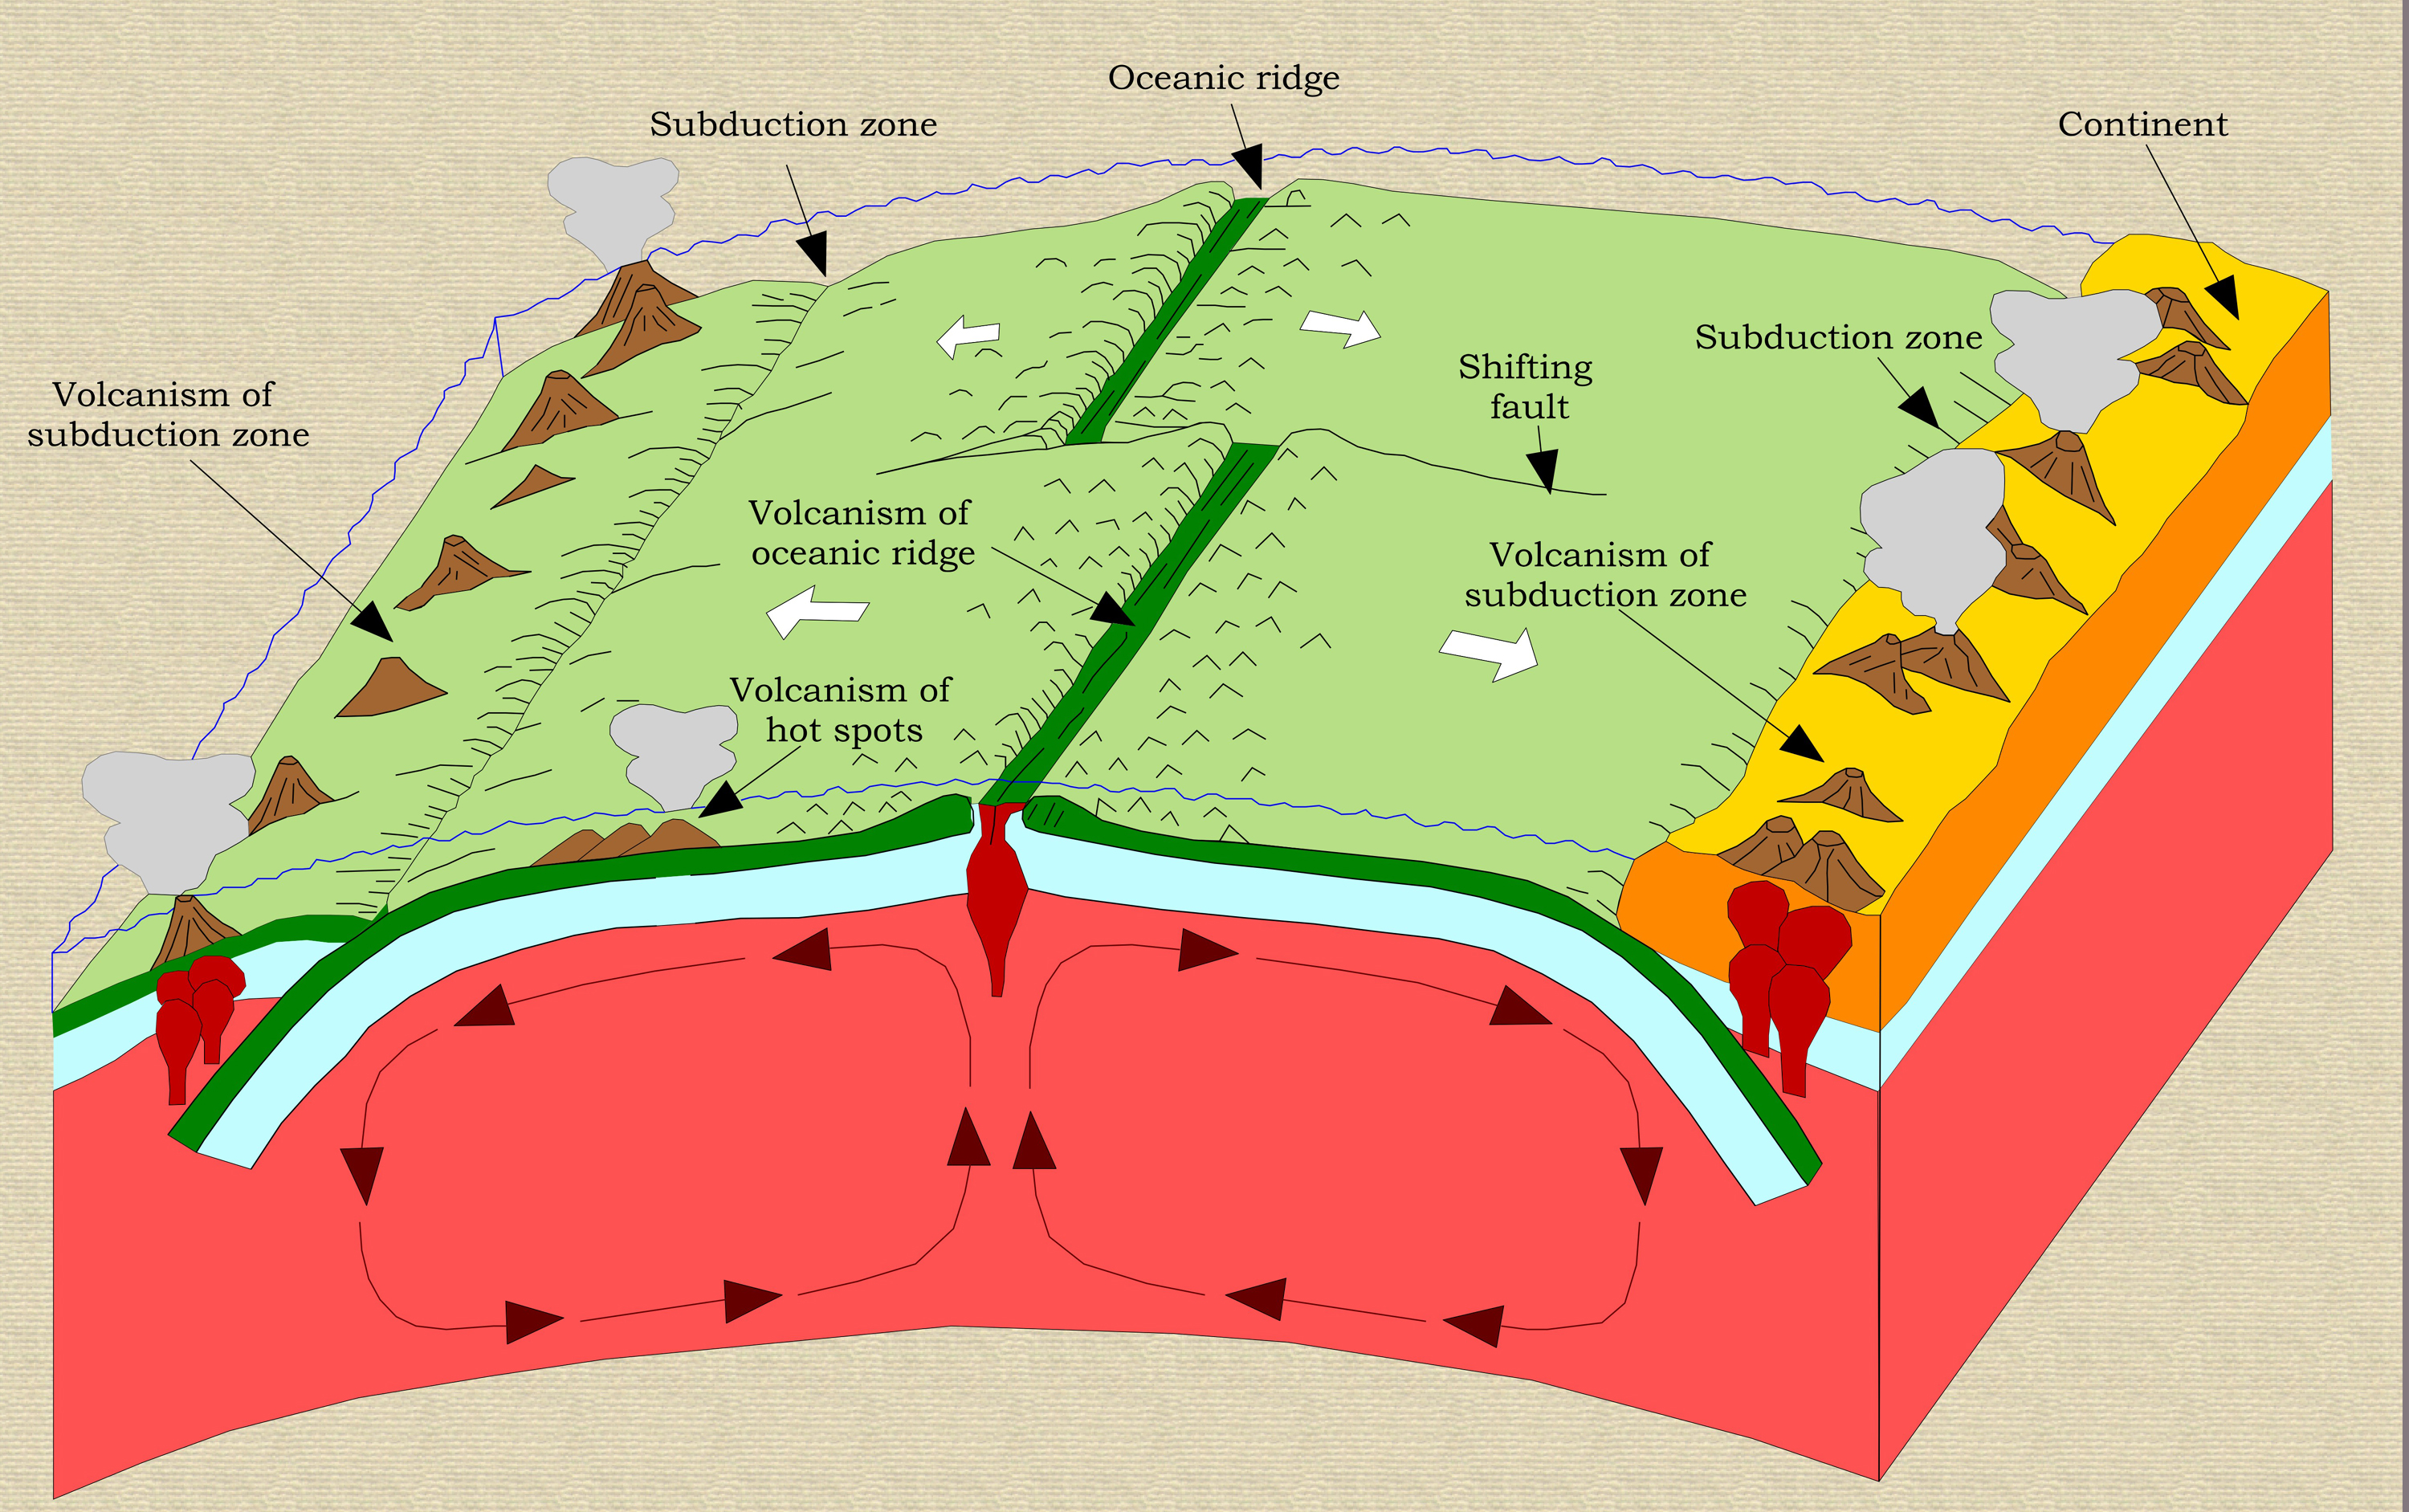 plate tectonics Mr andersen describes how plate tectonics shapes our planet continental and oceanic platers are contrasted and major plate boundaries are discussed.